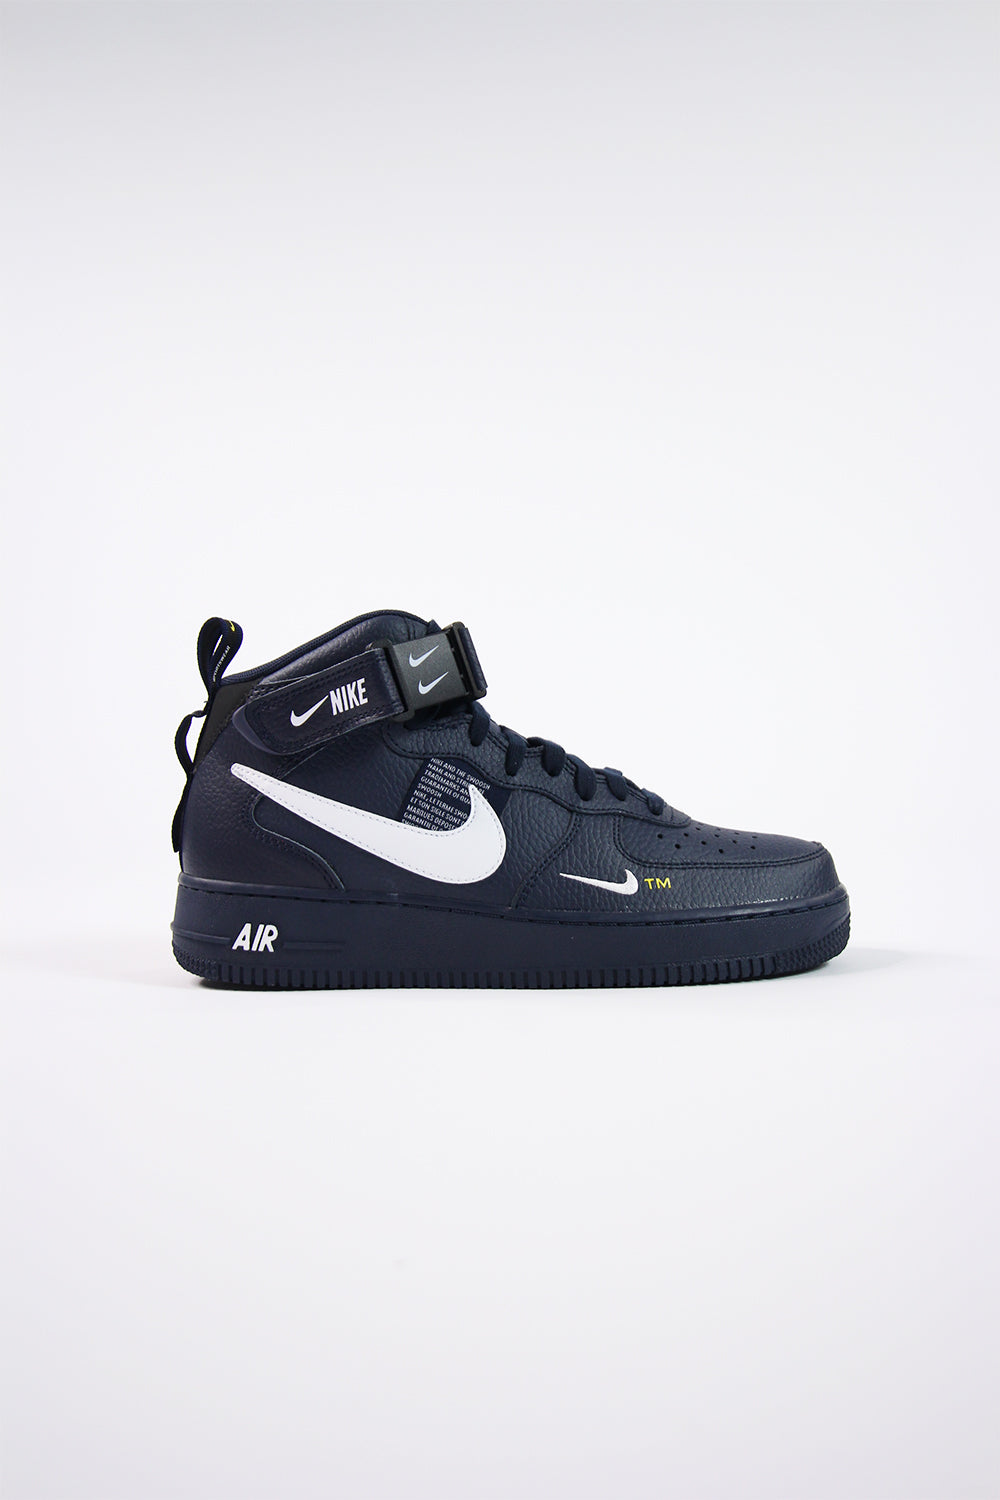 Nike - Air Force 1 Mid' 07 LV8 (Obsidian/White Black Tour Yellow) 804609-403